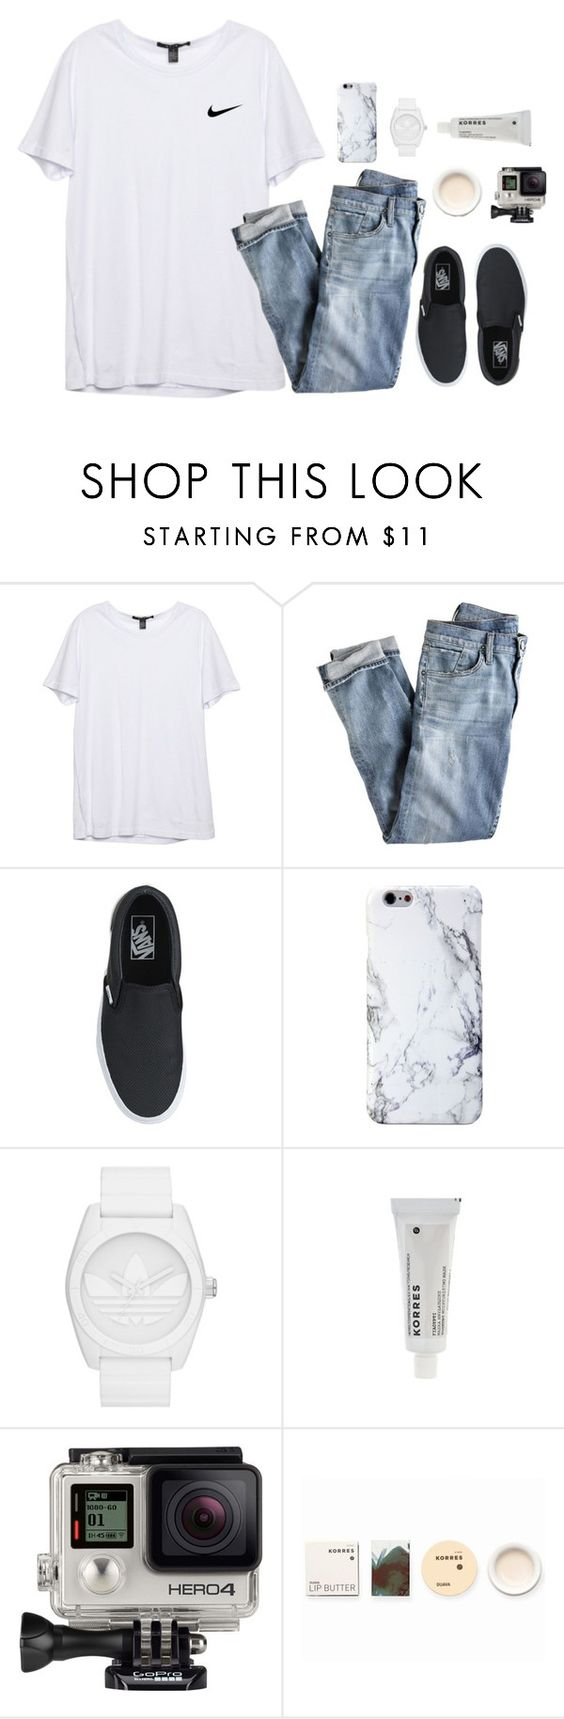 """""""sight seeing korea DAY2"""" by soprepp ❤ liked on Polyvore featuring J.Crew, adidas Originals, Korres and GoPro"""